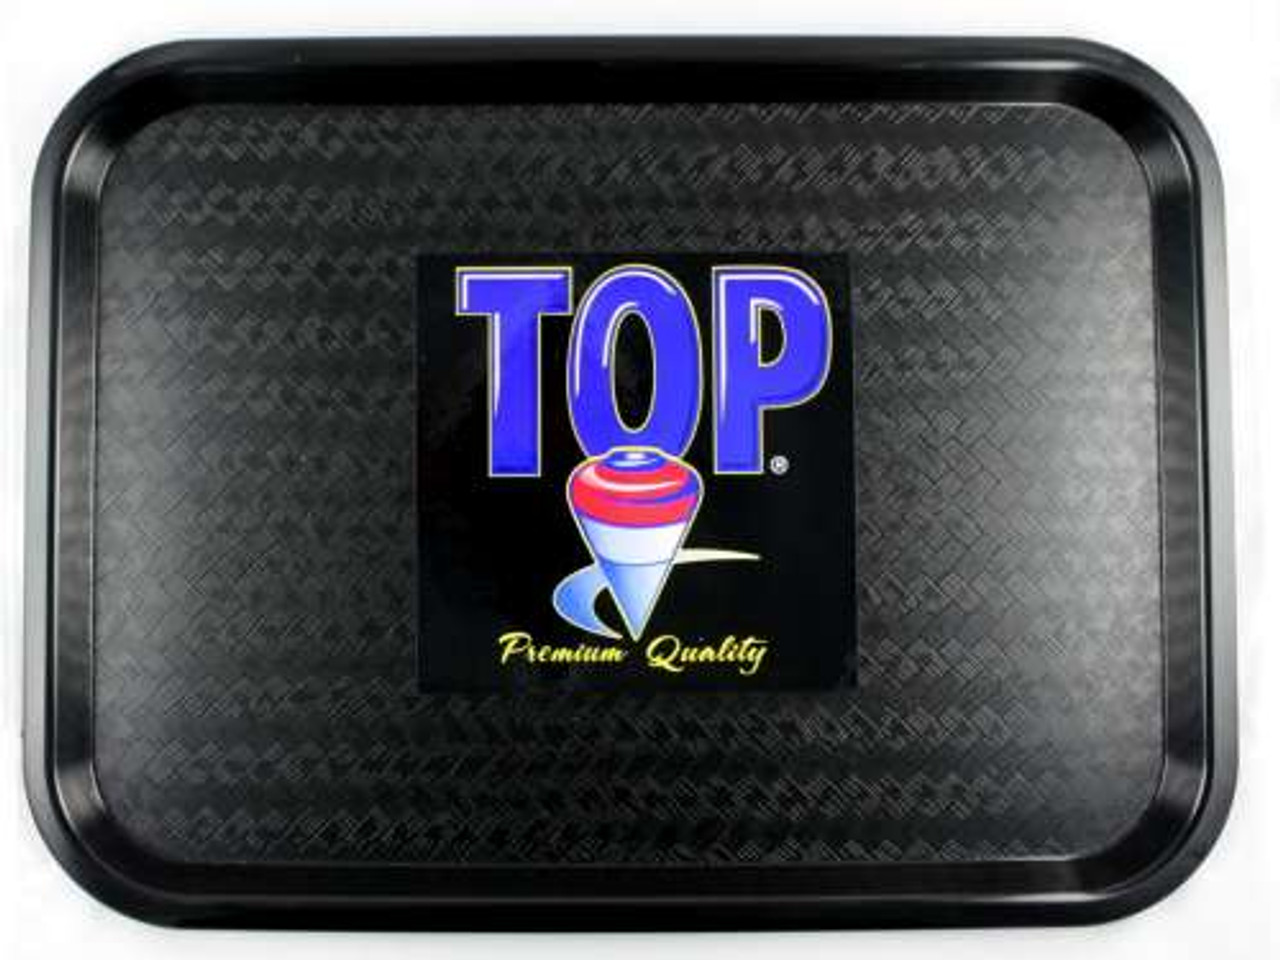 Top Rolling Tray